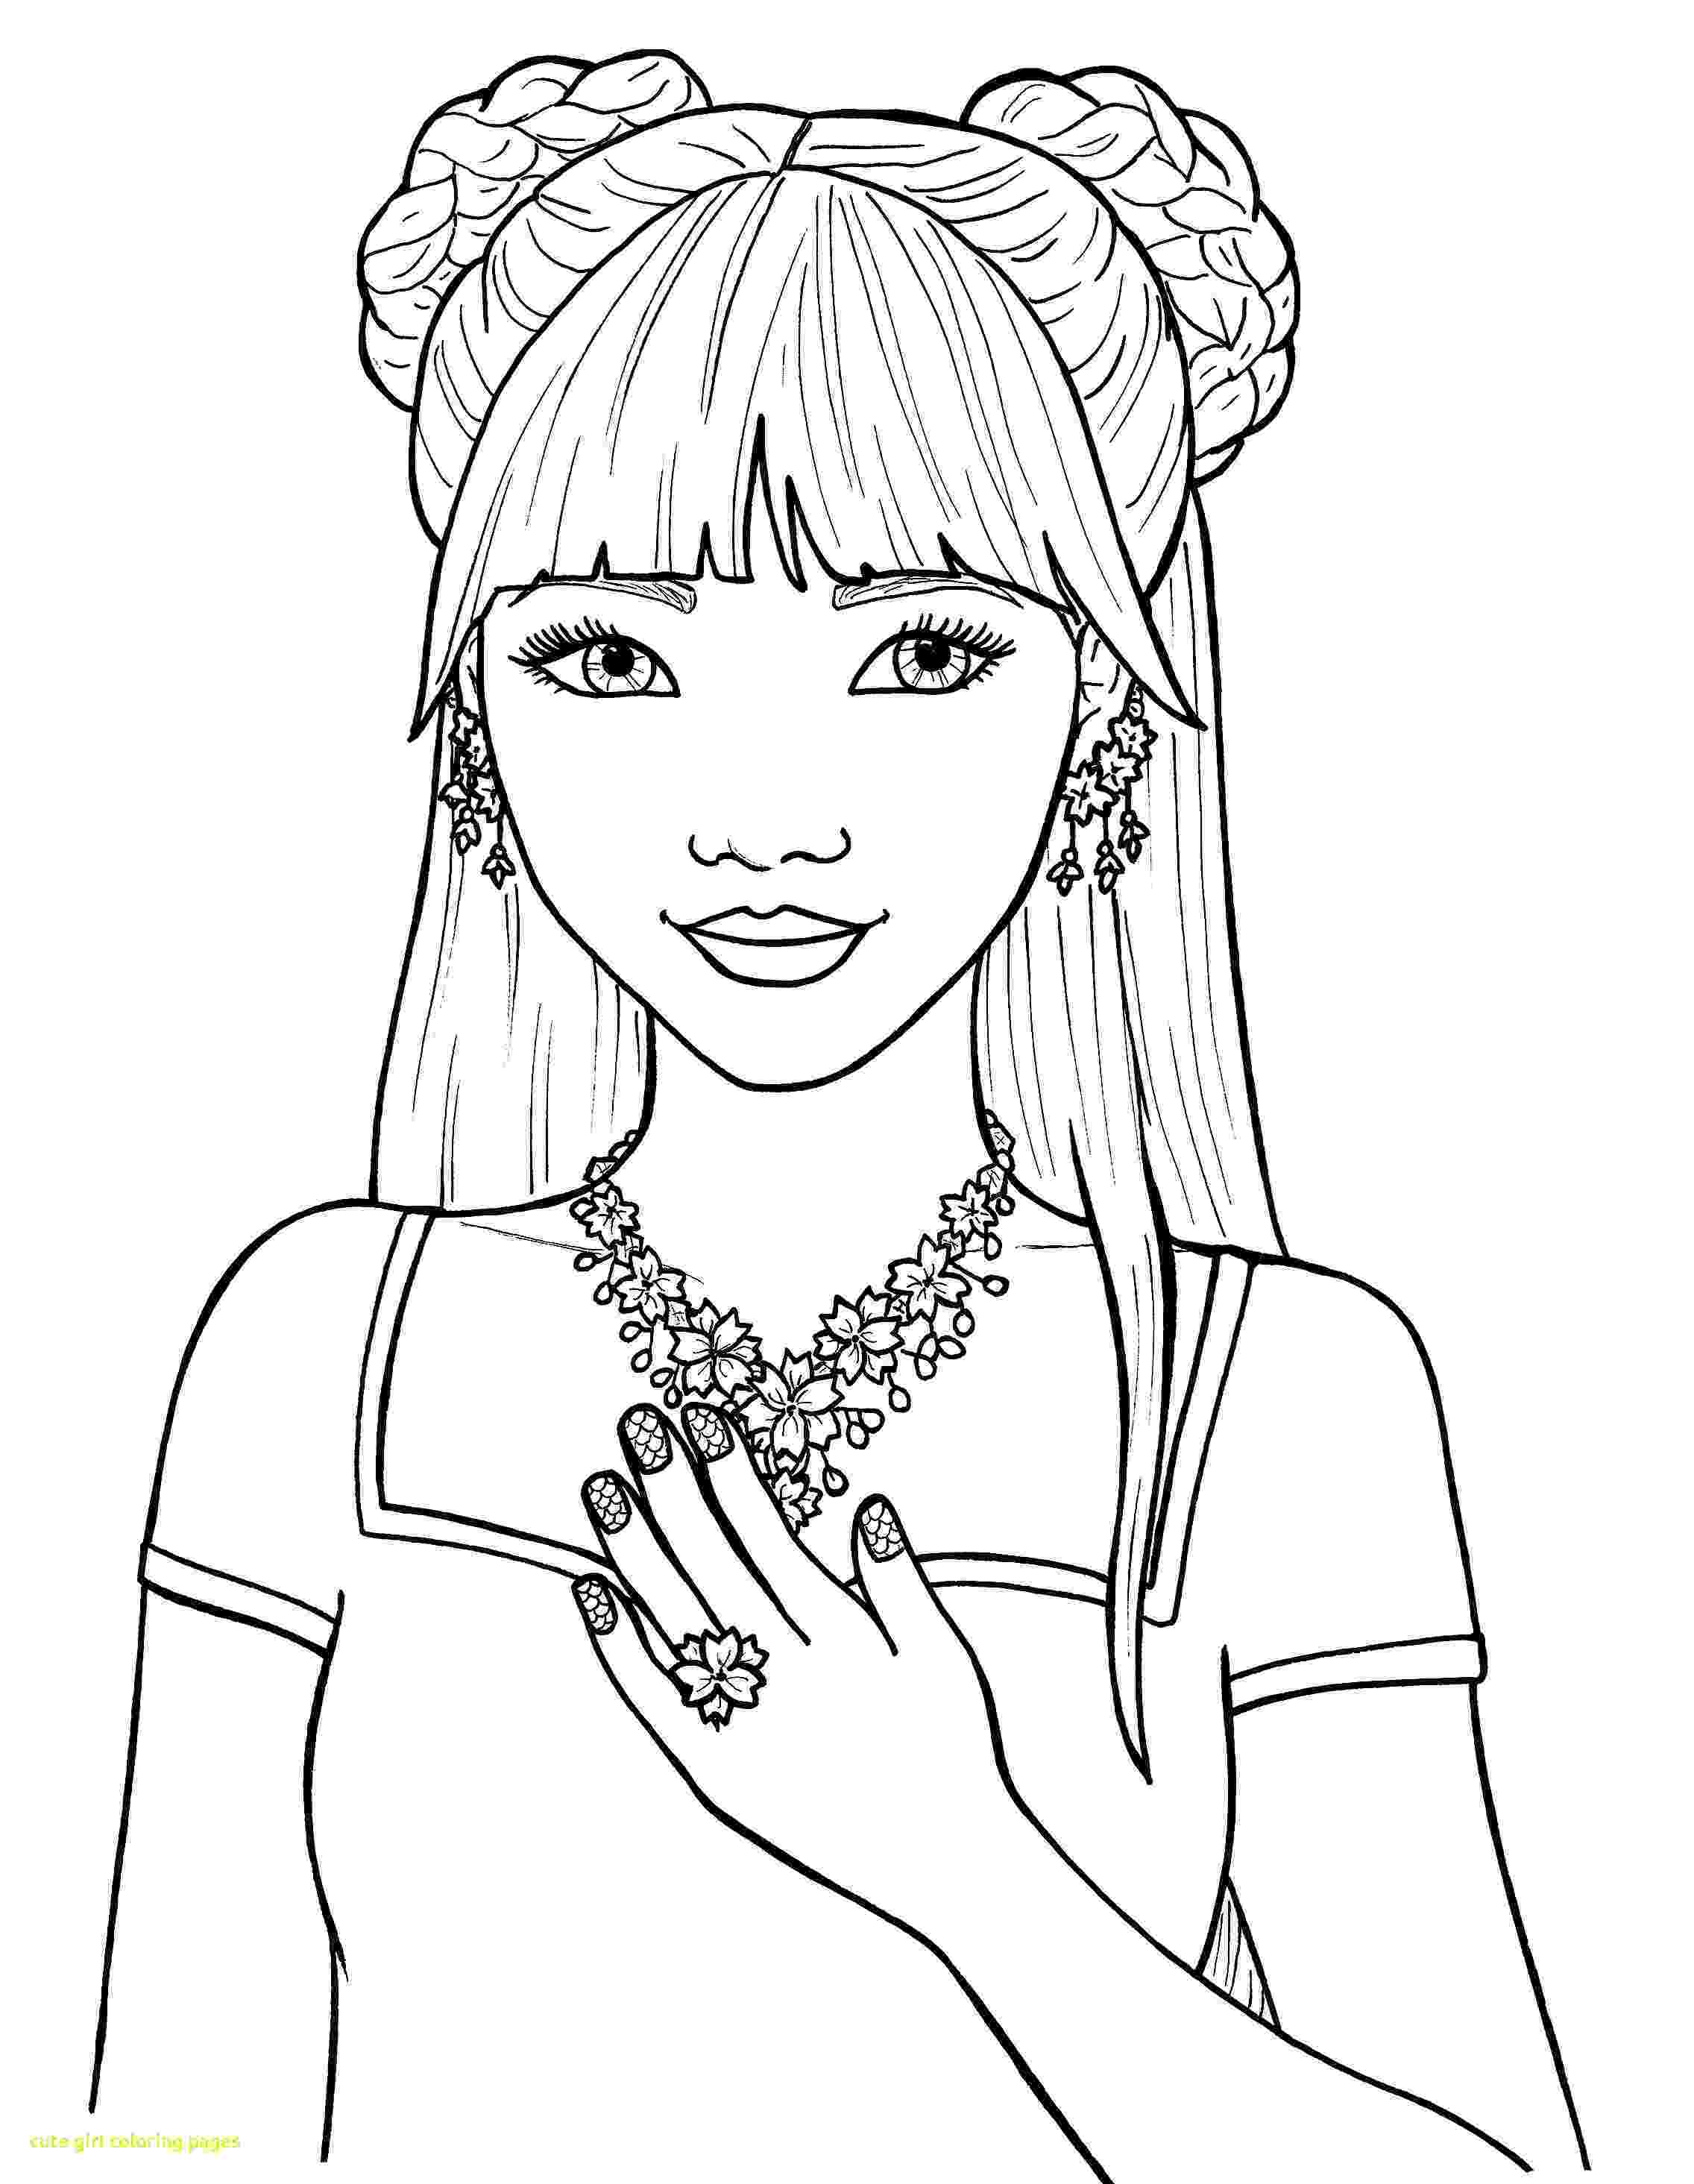 printing pages for girls coloring pages for girls dr odd pages girls printing for